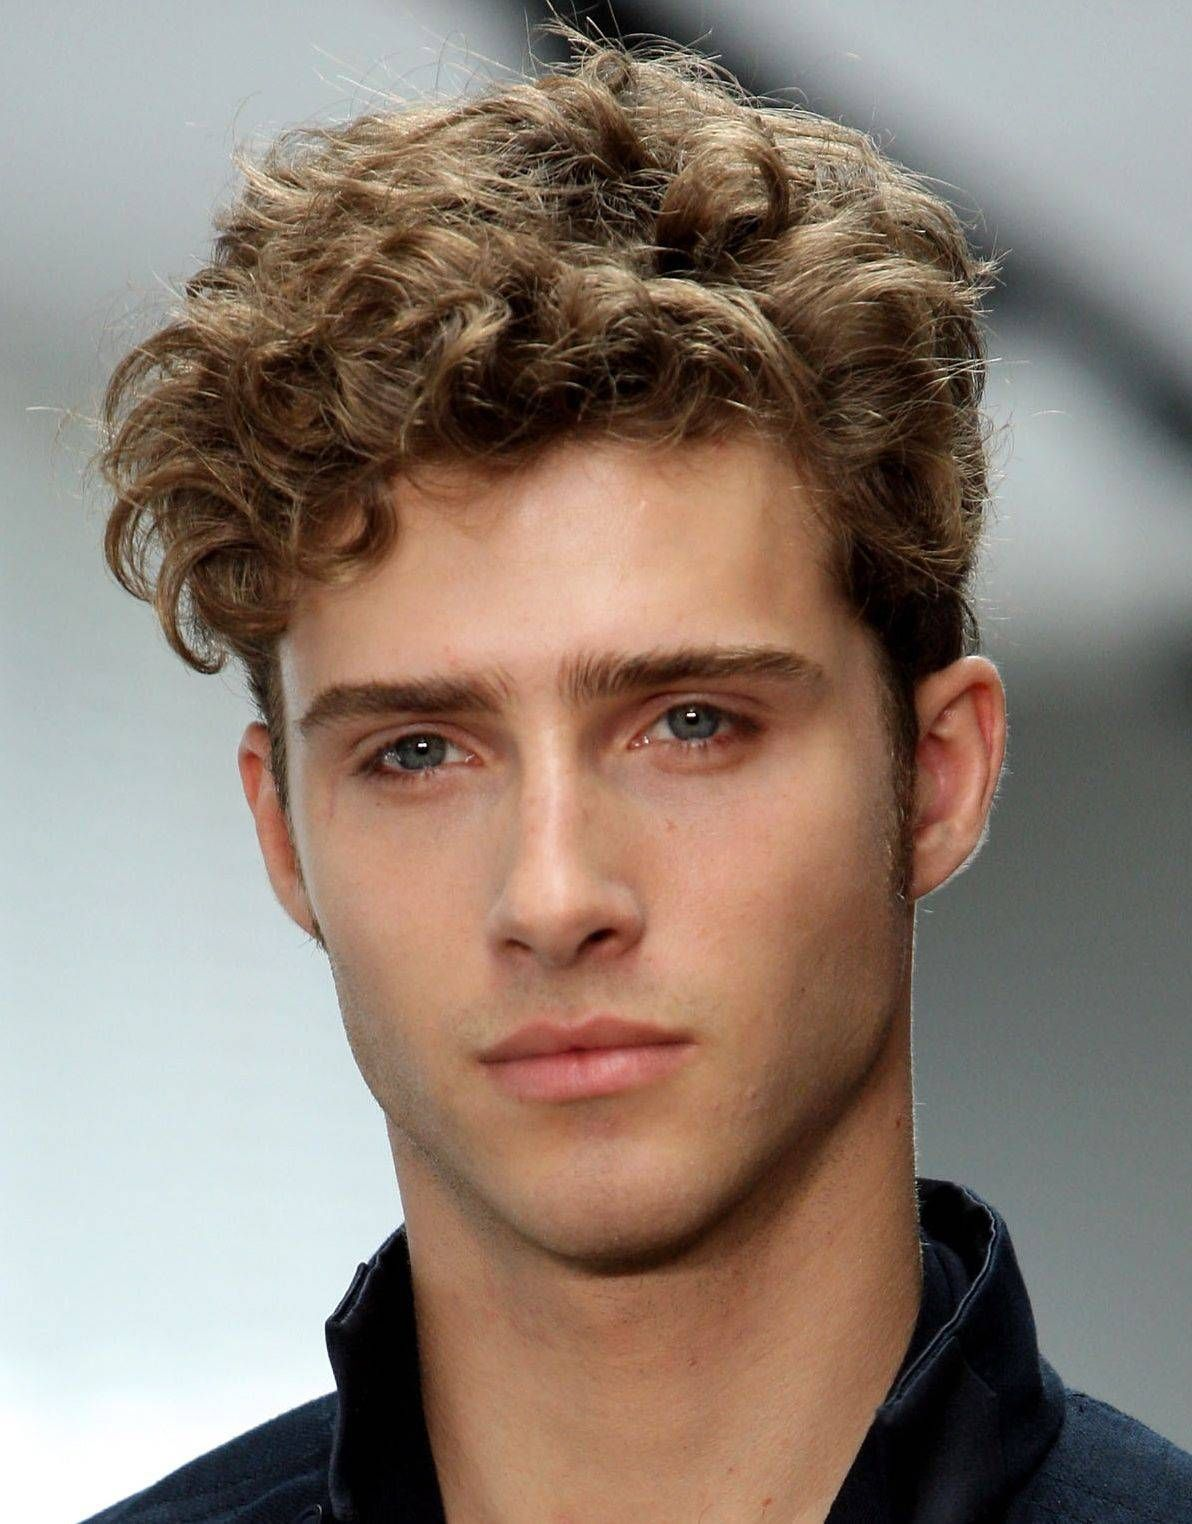 Hairstyle For Curly Hair Male Cool Hairstyles For Men